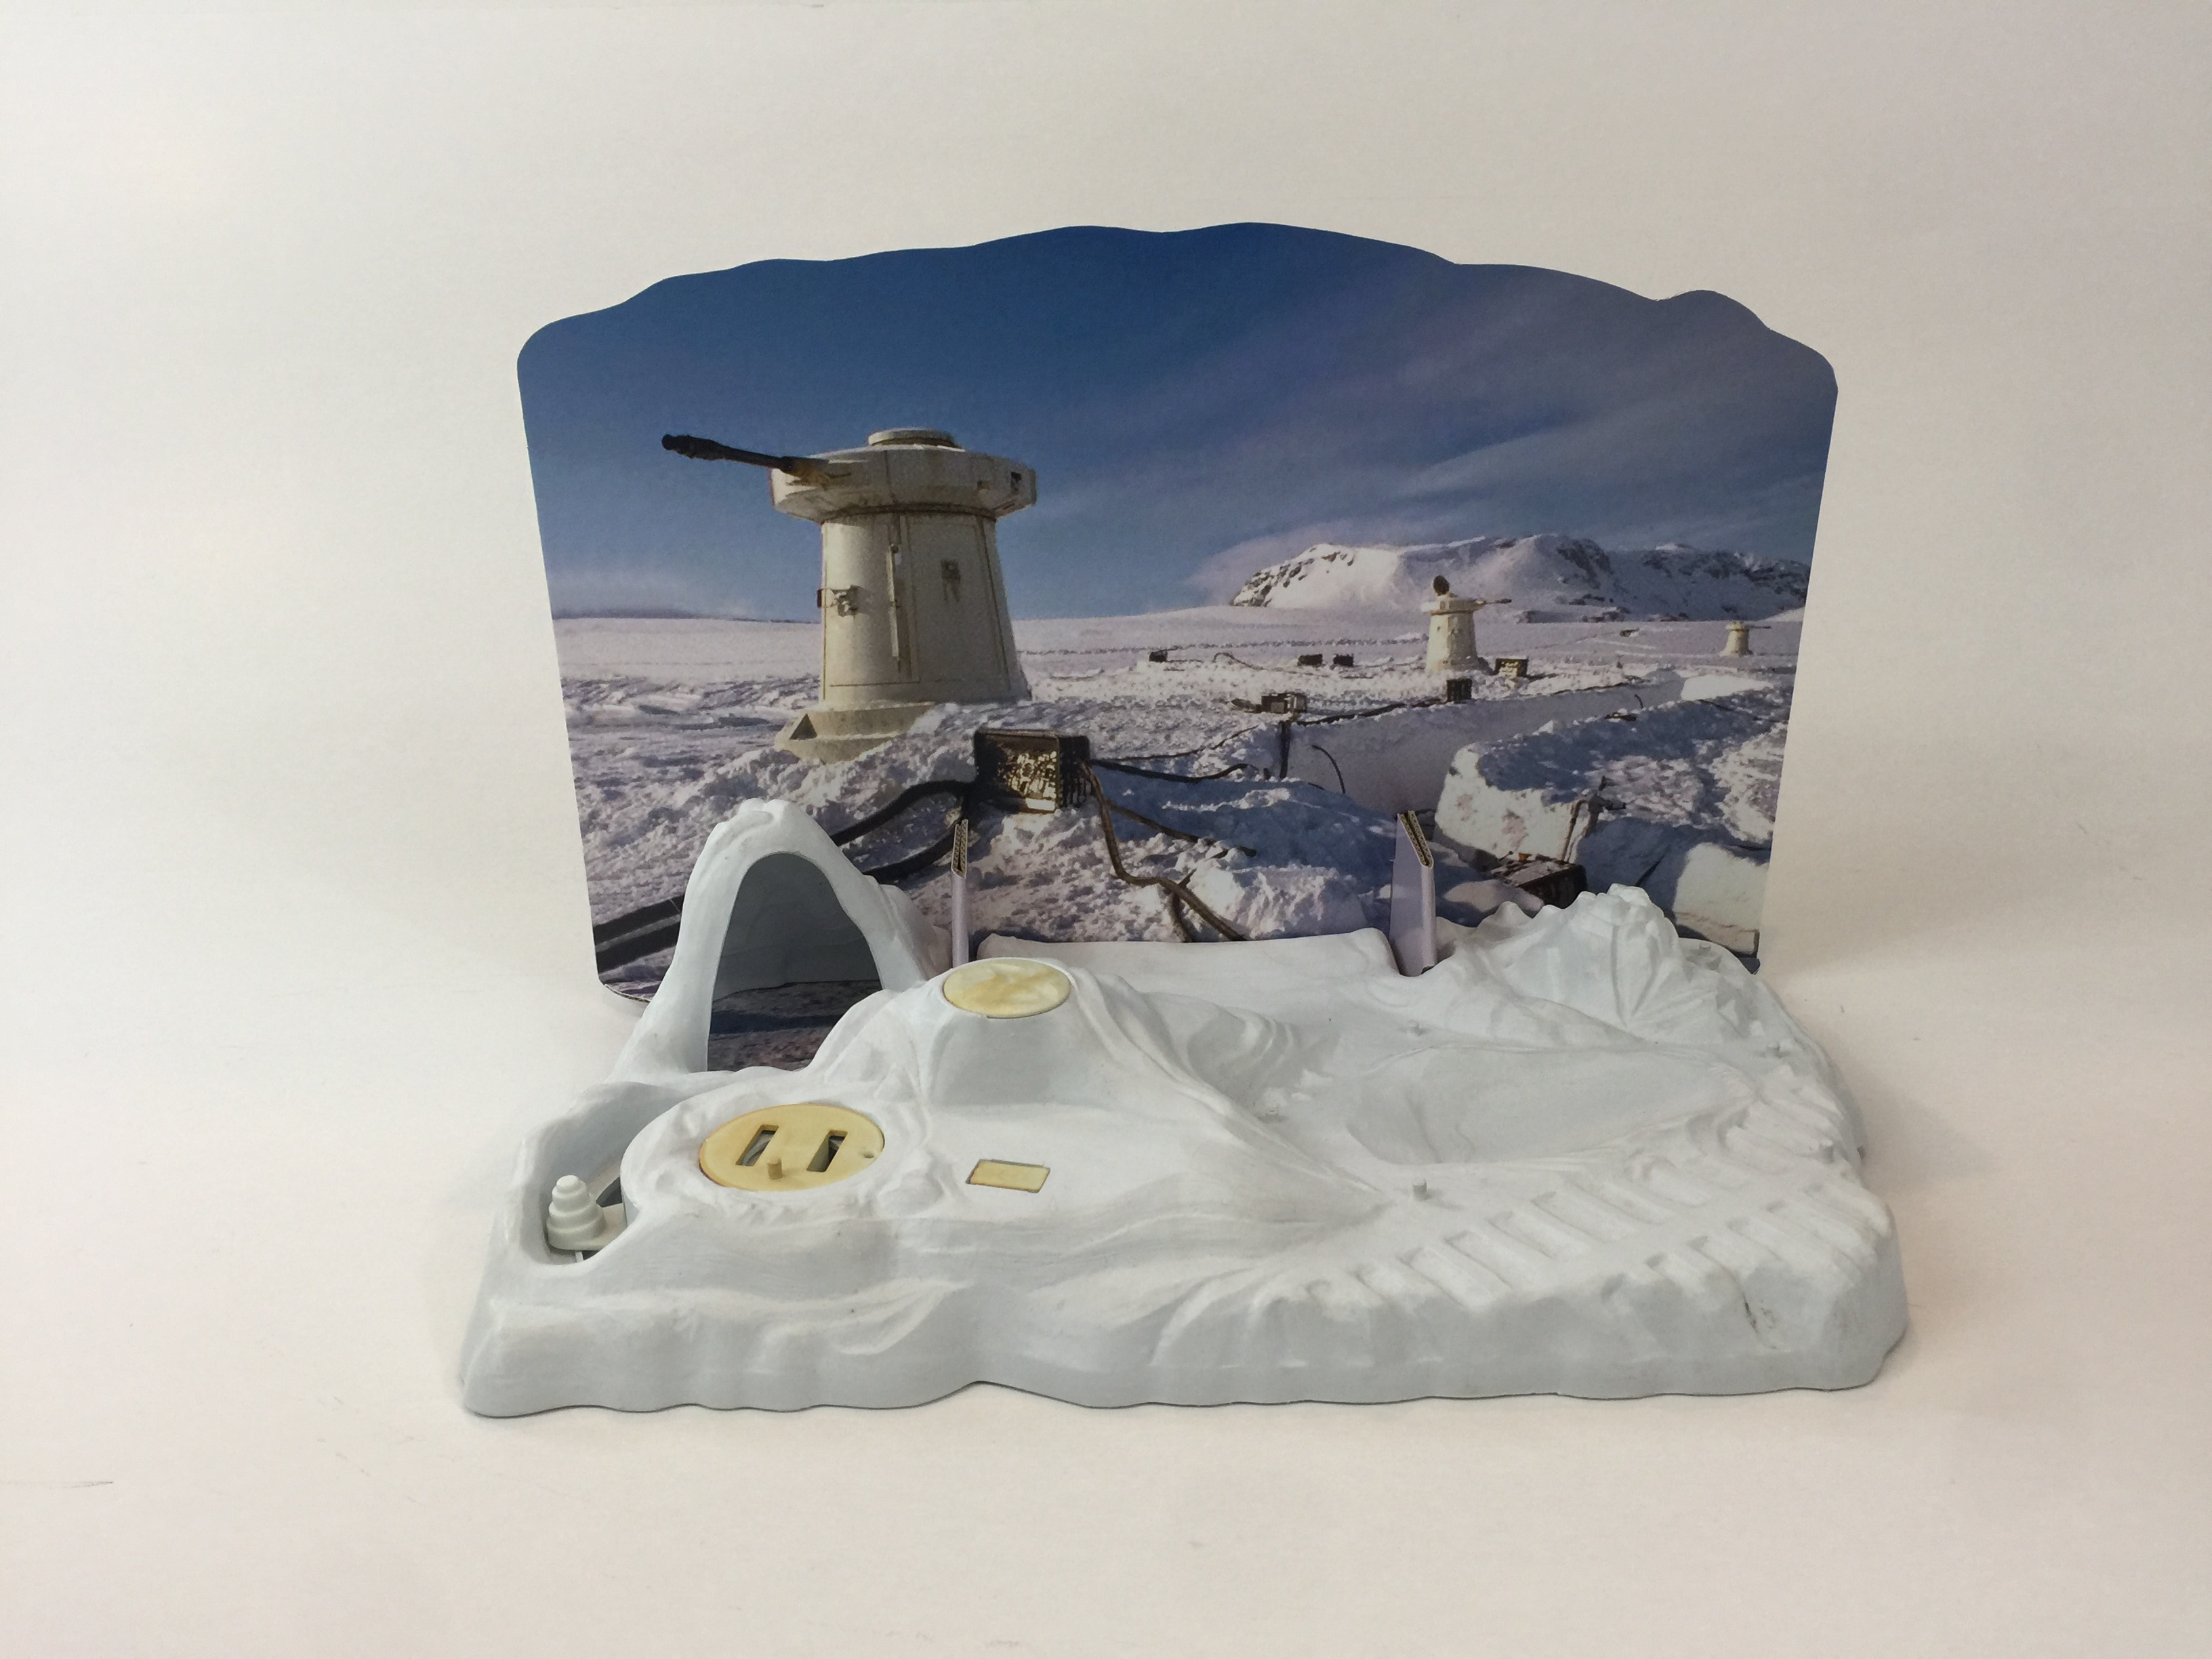 VINTAGE STAR WARS REBEL COMMAND BASE PLAYSET REPRO BACKGROUND ONLY.